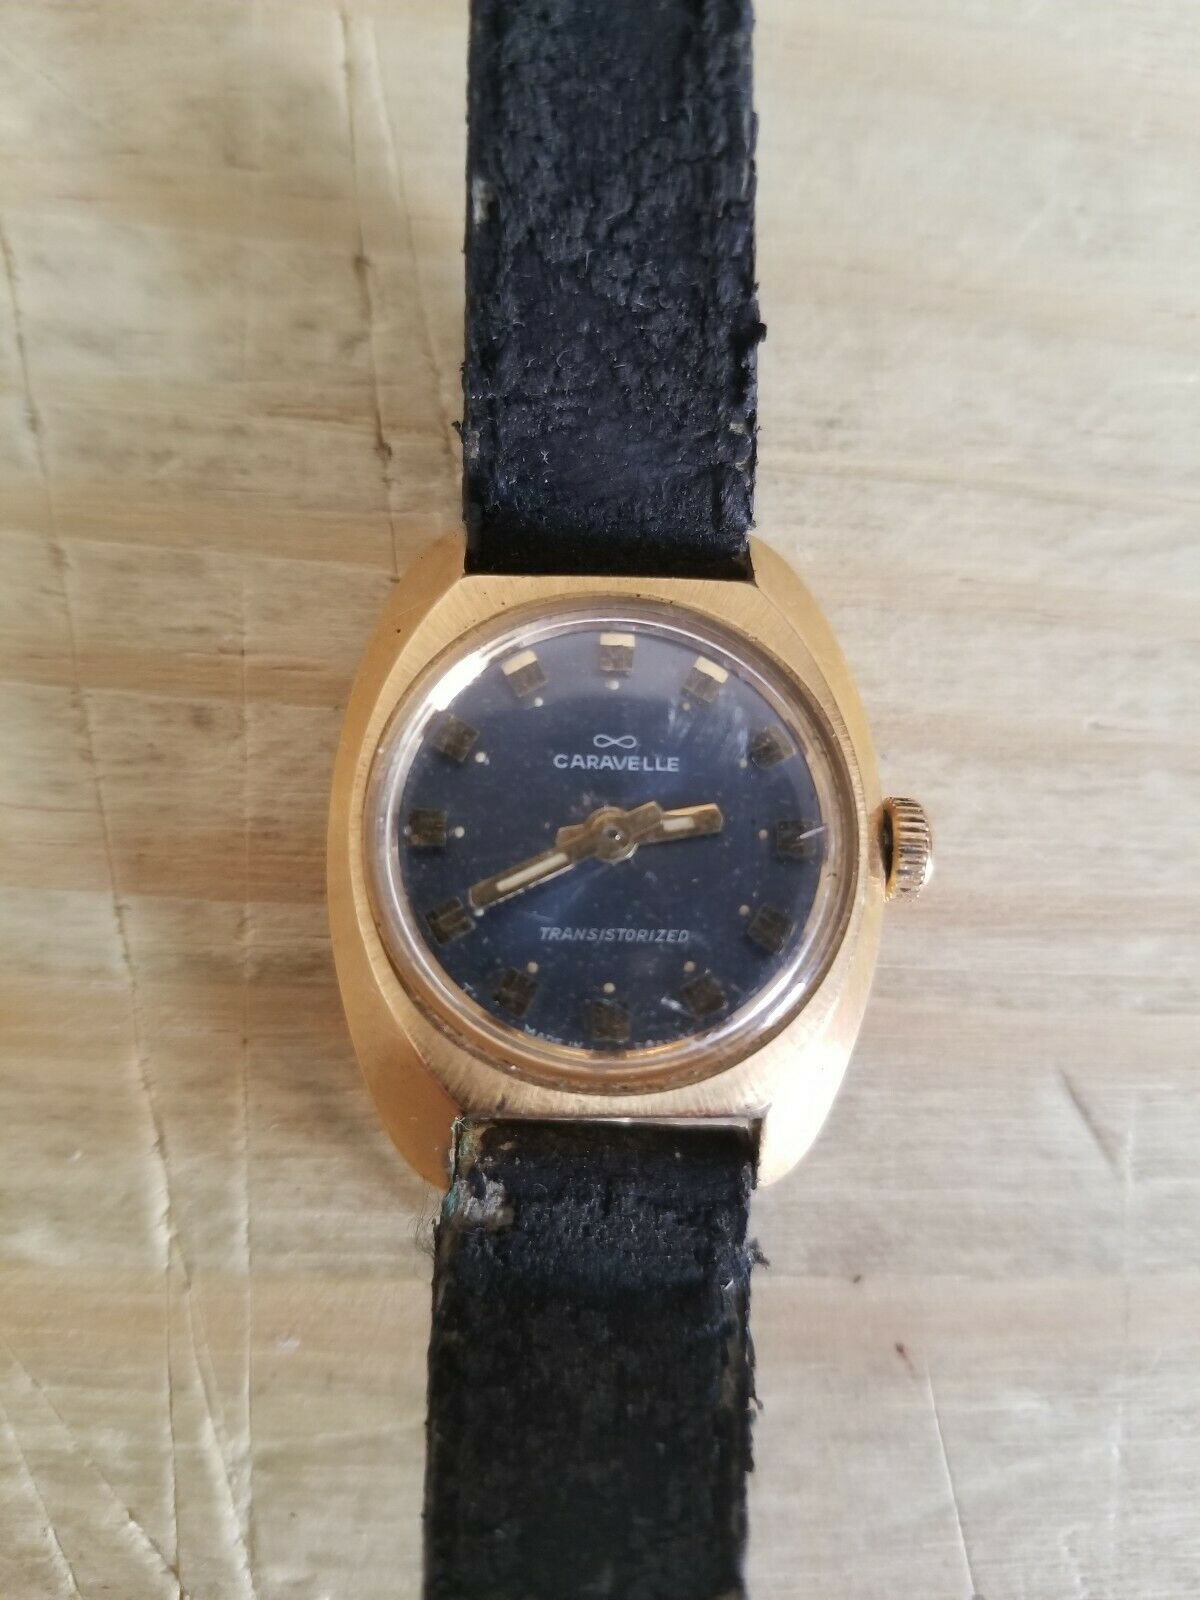 Primary image for Vintage Women's Caravelle Transistorized Watch.UNTESTED.SOLD AS IS.